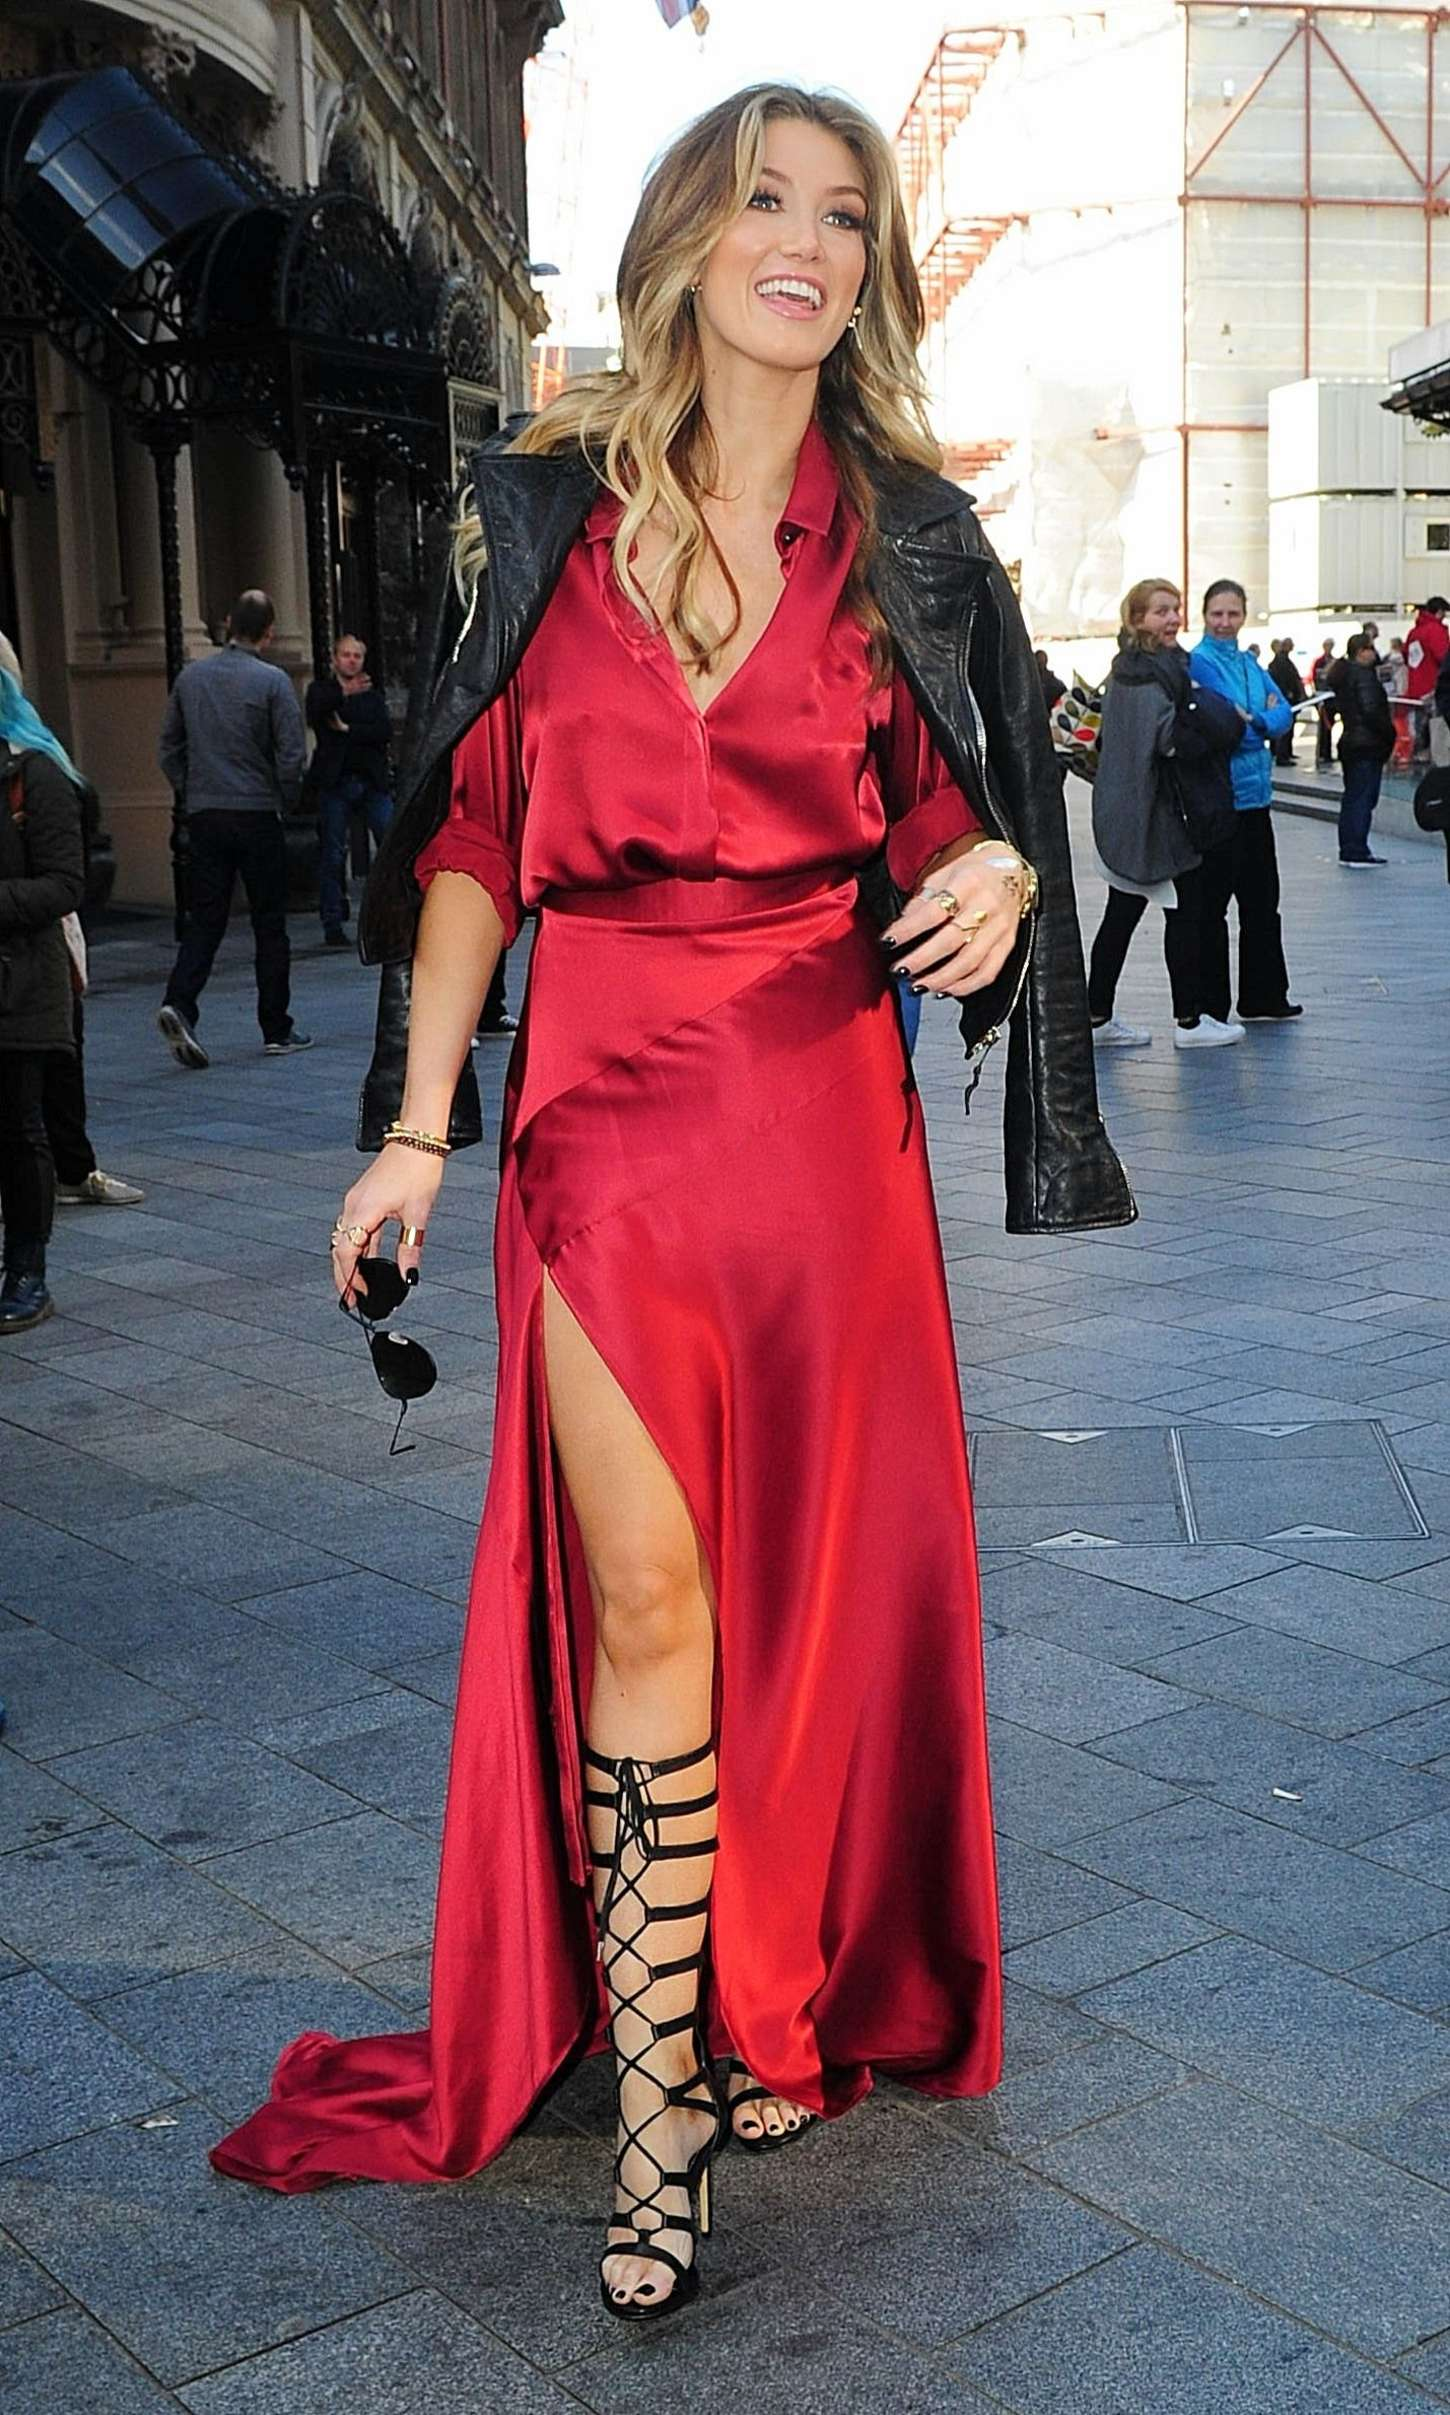 Discussion on this topic: Demi rose mawby sexy 7 Photos, delta-goodrem-and-her-skintight-red-dress/